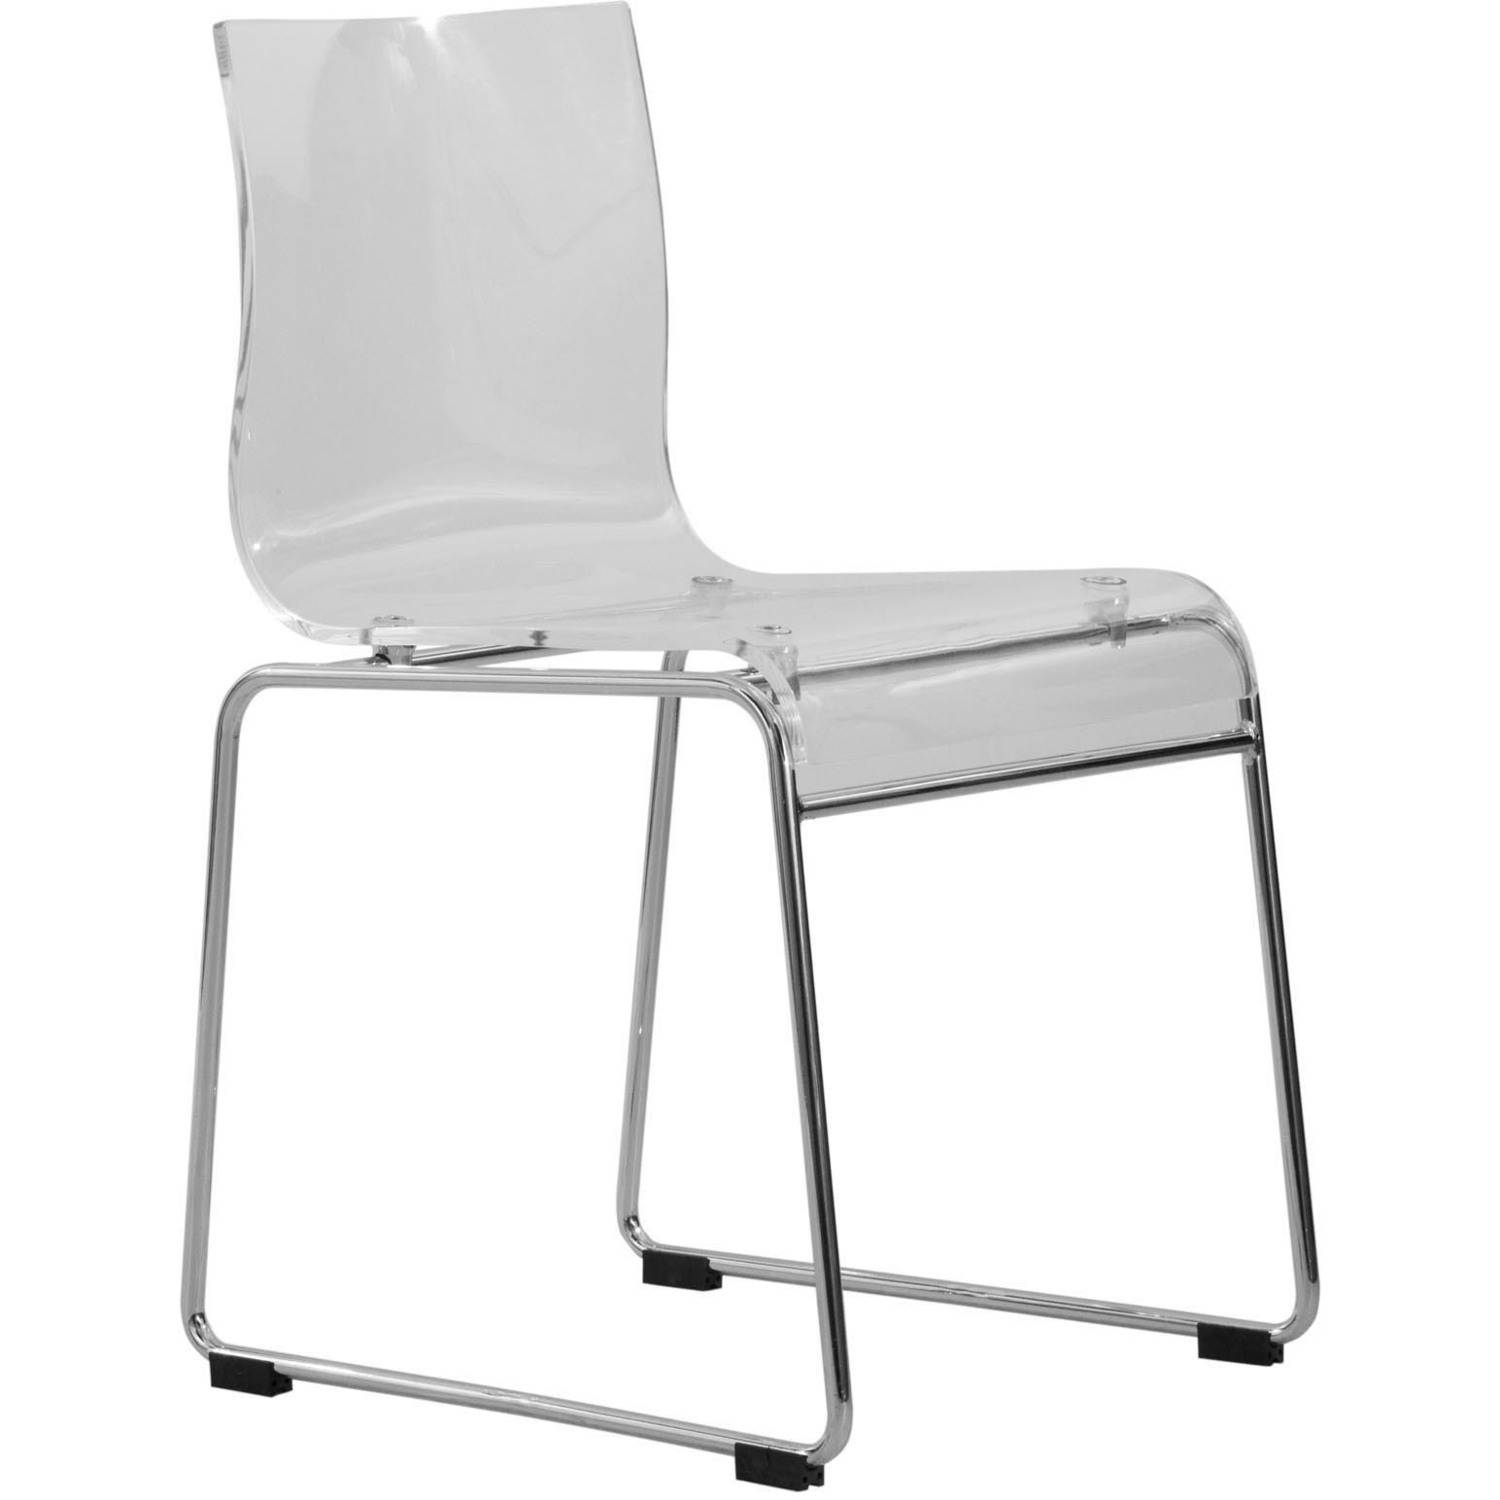 acrylic side chair with cushion covers for weddings chairs leisuremod lima modern dining in clear